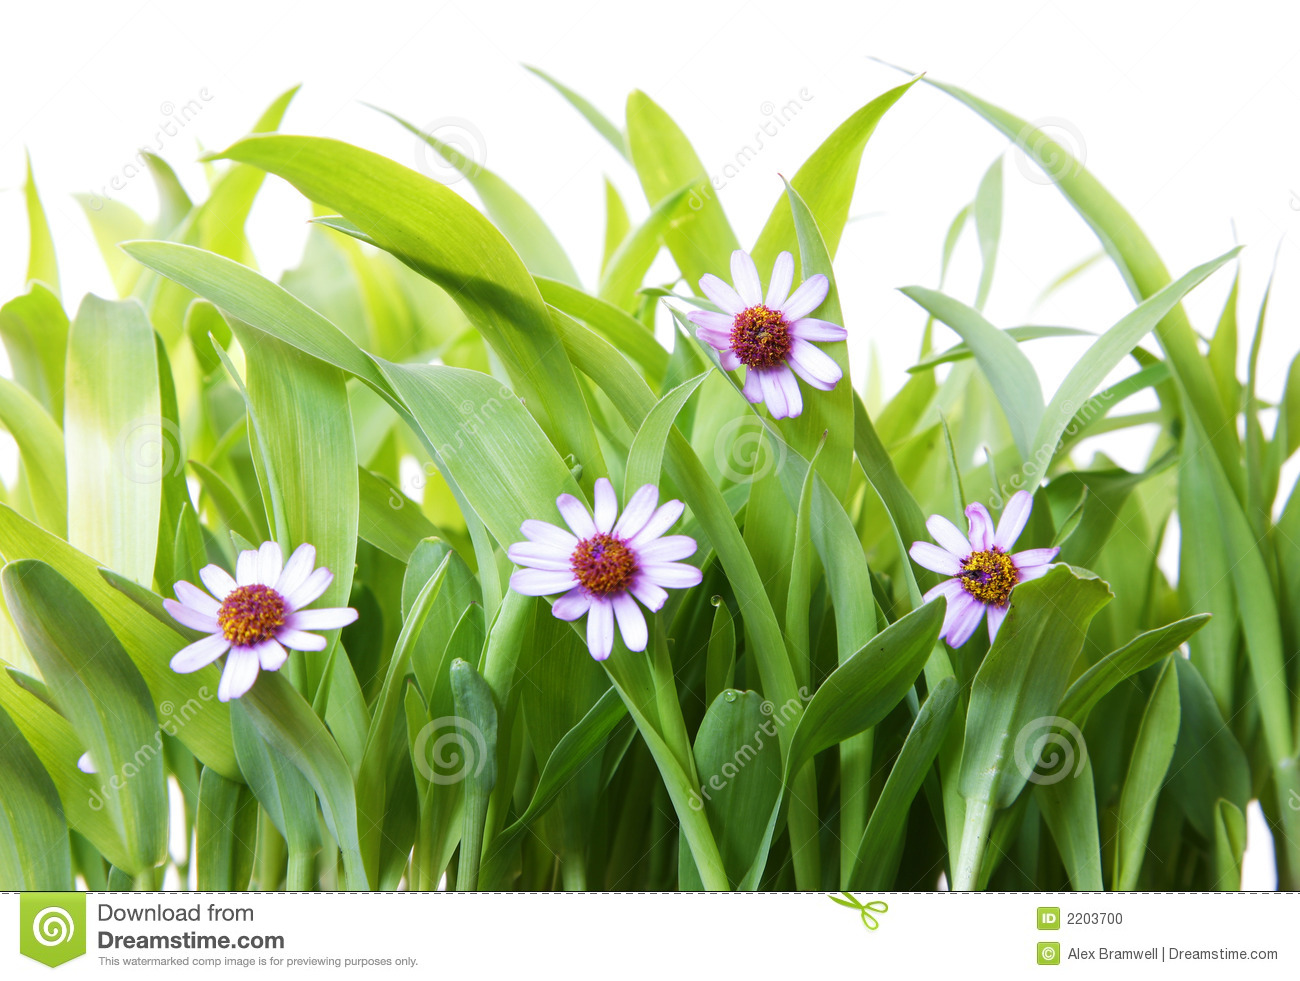 Grass and flowers stock photo image of rural fresh for Grass flower